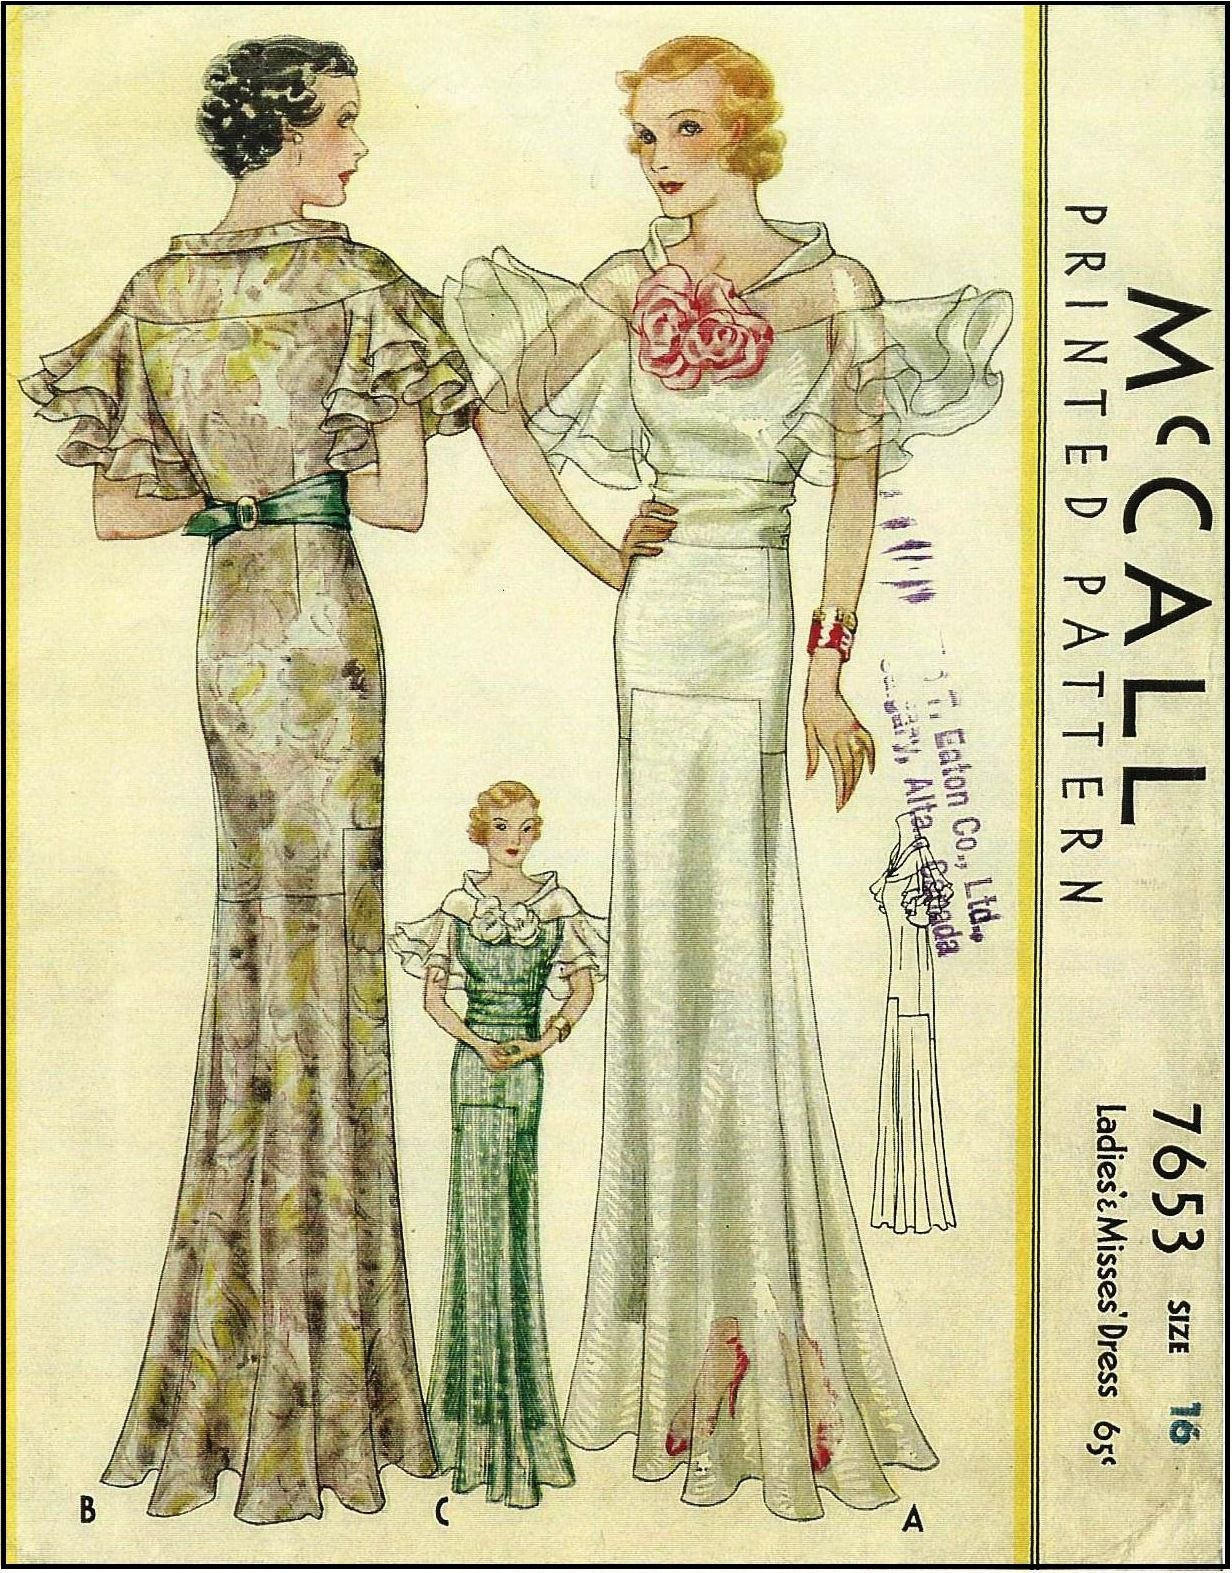 Mccall 7653 1930s Ladies Evening Gown With Ruffled Sleeve Detailing Sewing Pattern Vintage Dress Patterns Vintage Fashion 1930s Vintage Patterns [ 1573 x 1232 Pixel ]